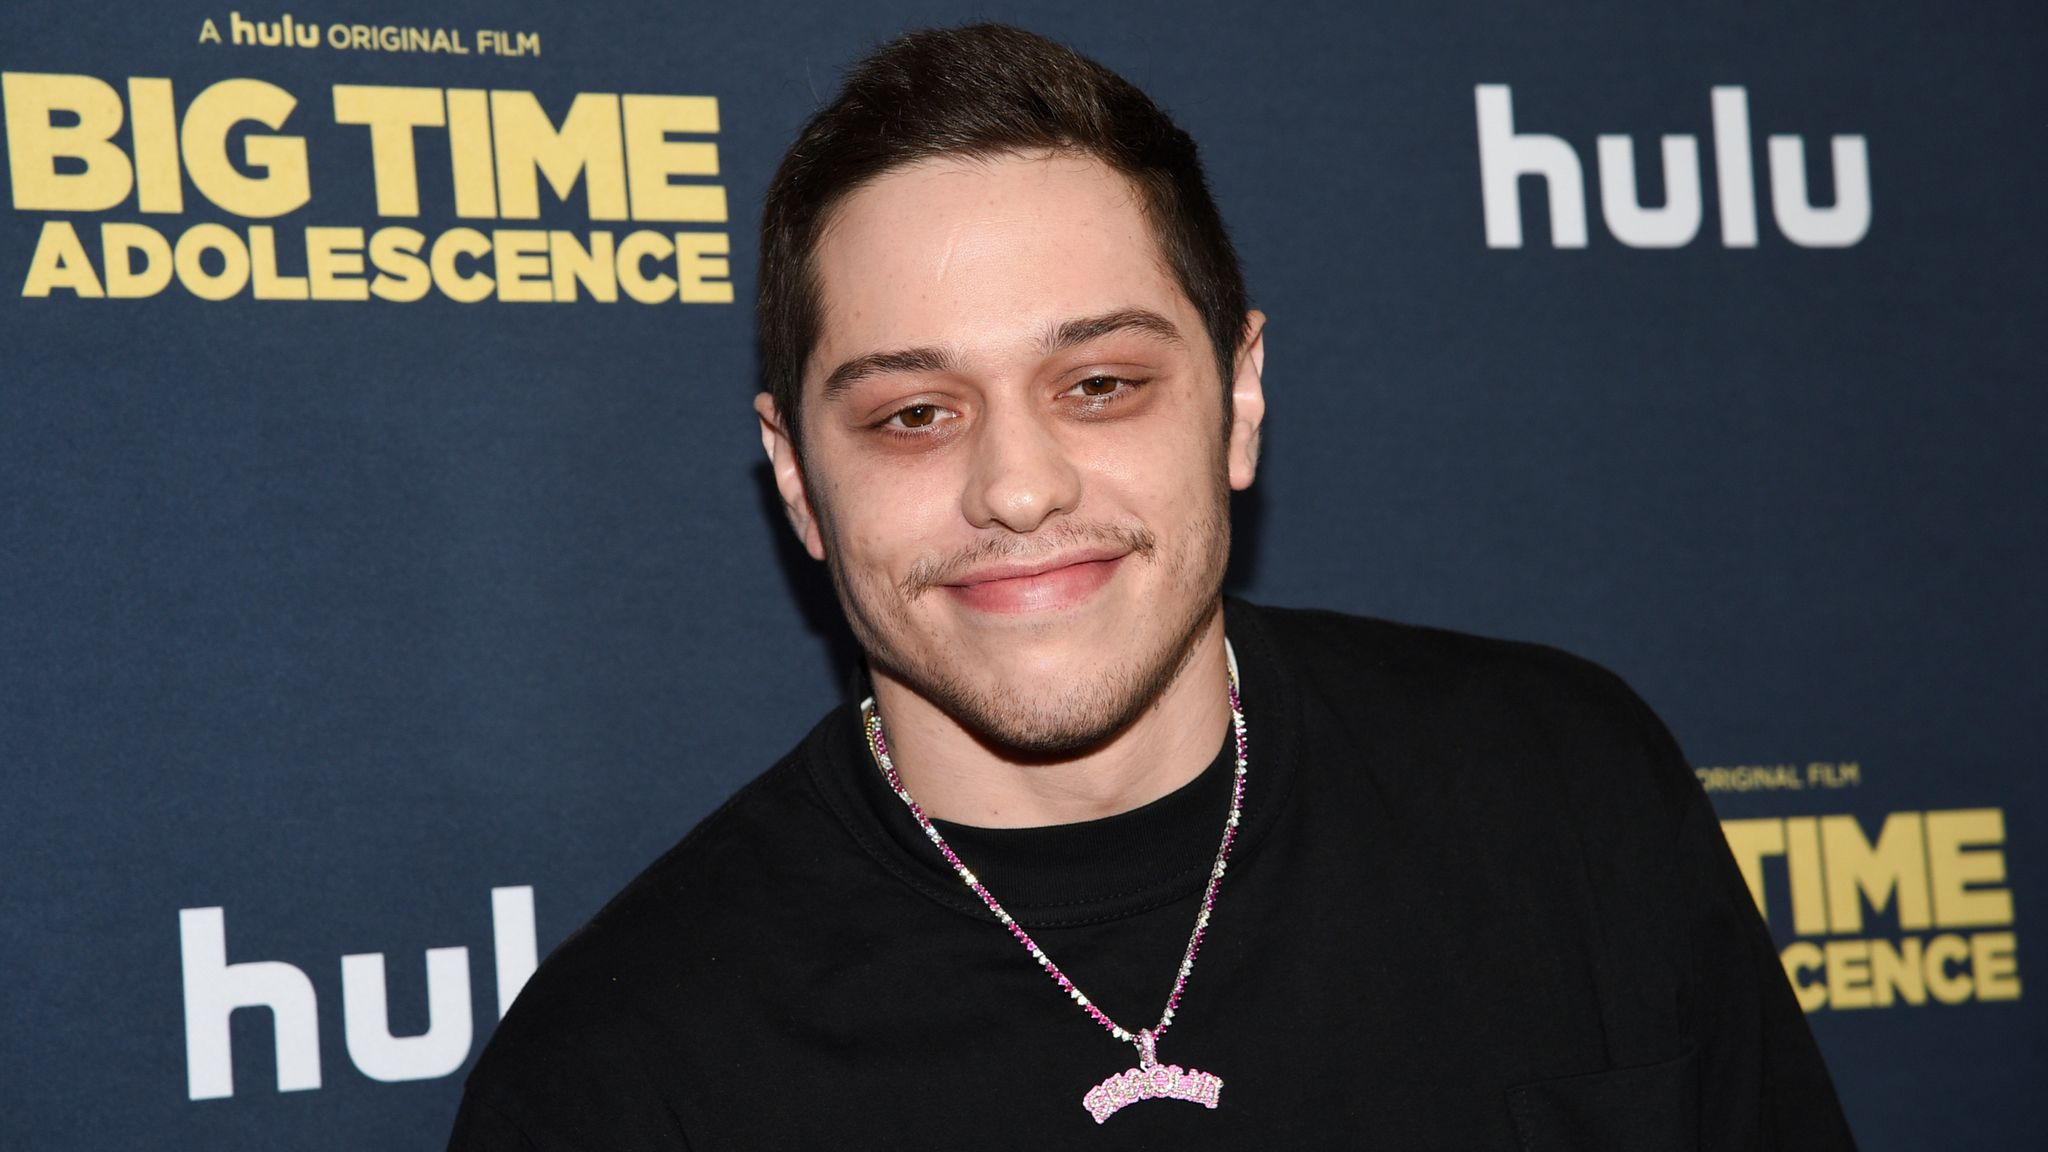 """Pete Davidson attends the premiere of """"Big Time Adolescence"""" at Metrograph on Thursday, March 5, 2020, in New York. (Photo by Evan Agostini/Invision/AP)"""